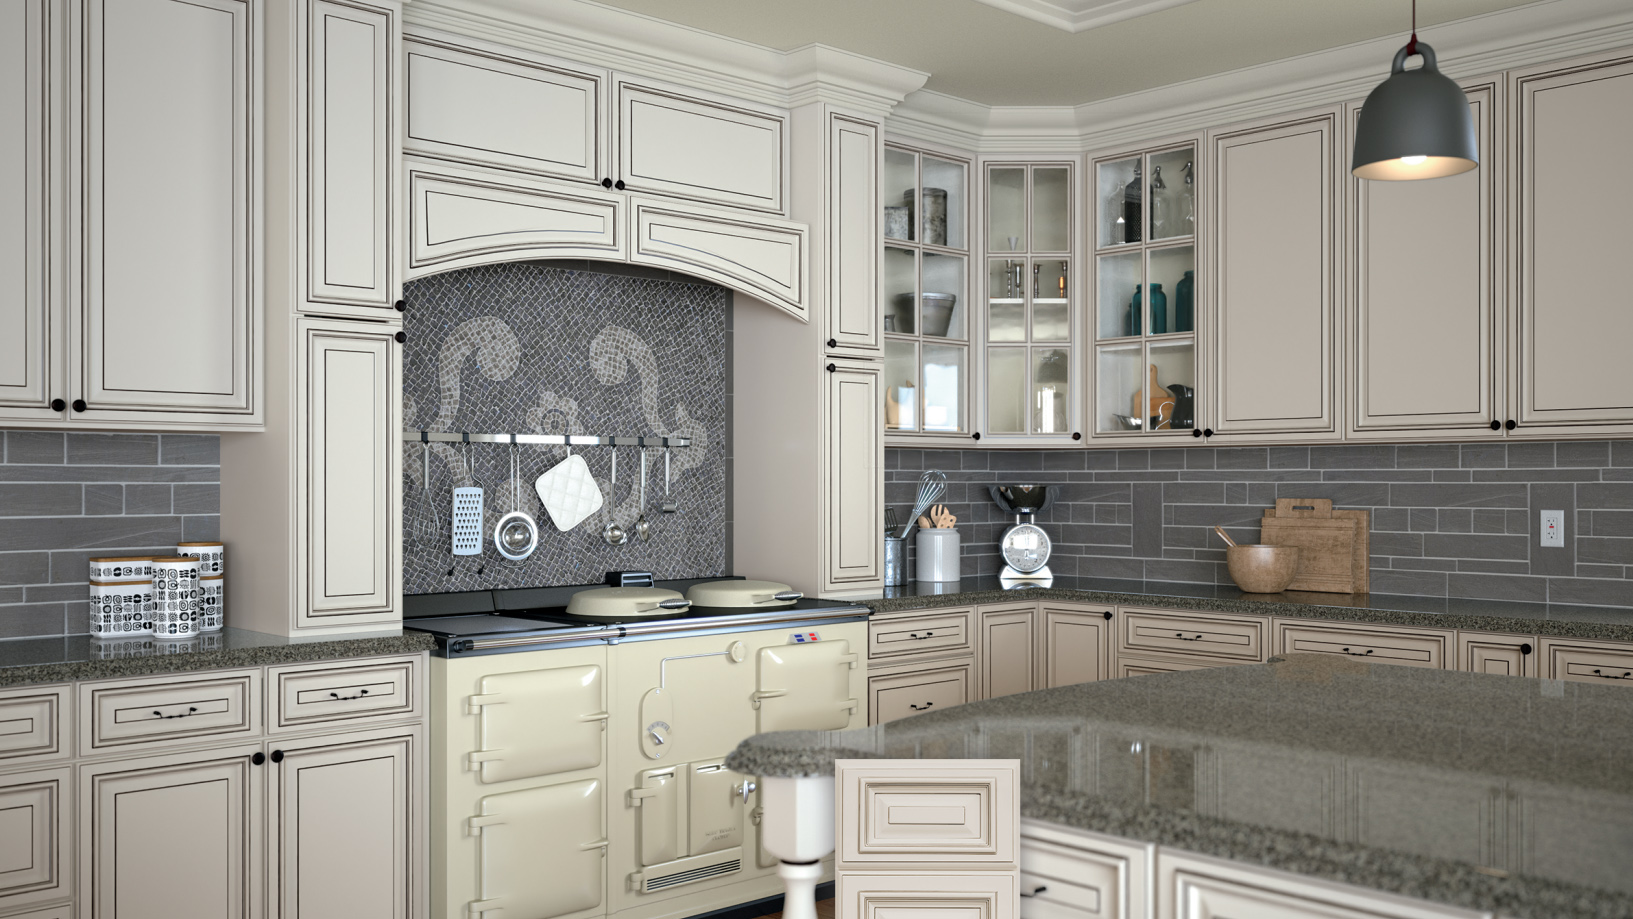 Orlando kitchen bath design center for Bath remodel orlando